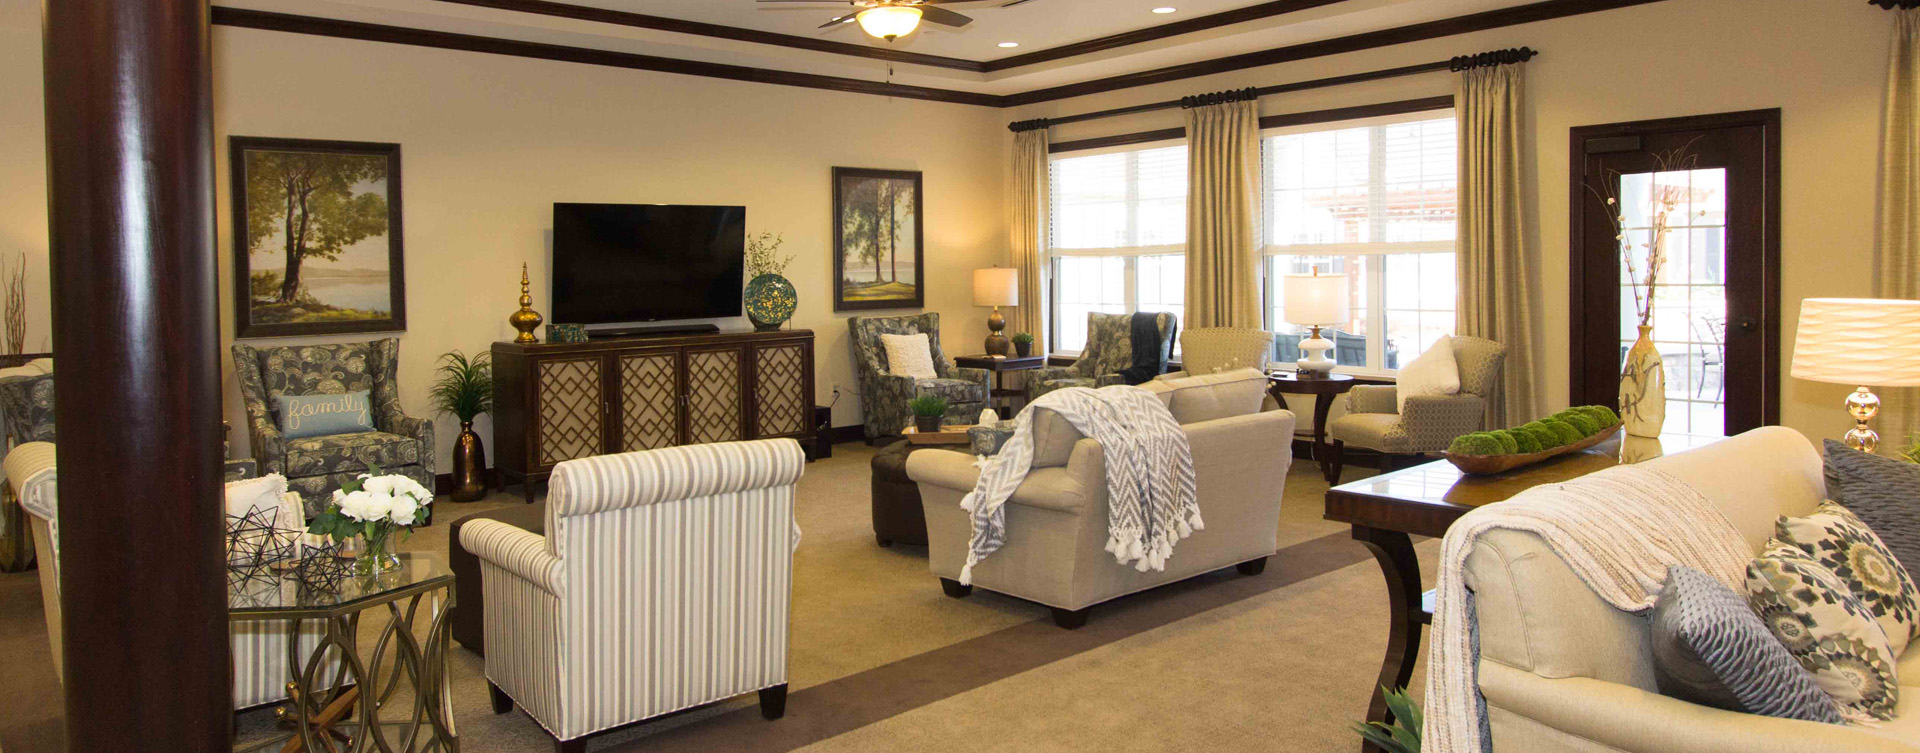 Socialize with friends in the living room at Bickford of Gurnee